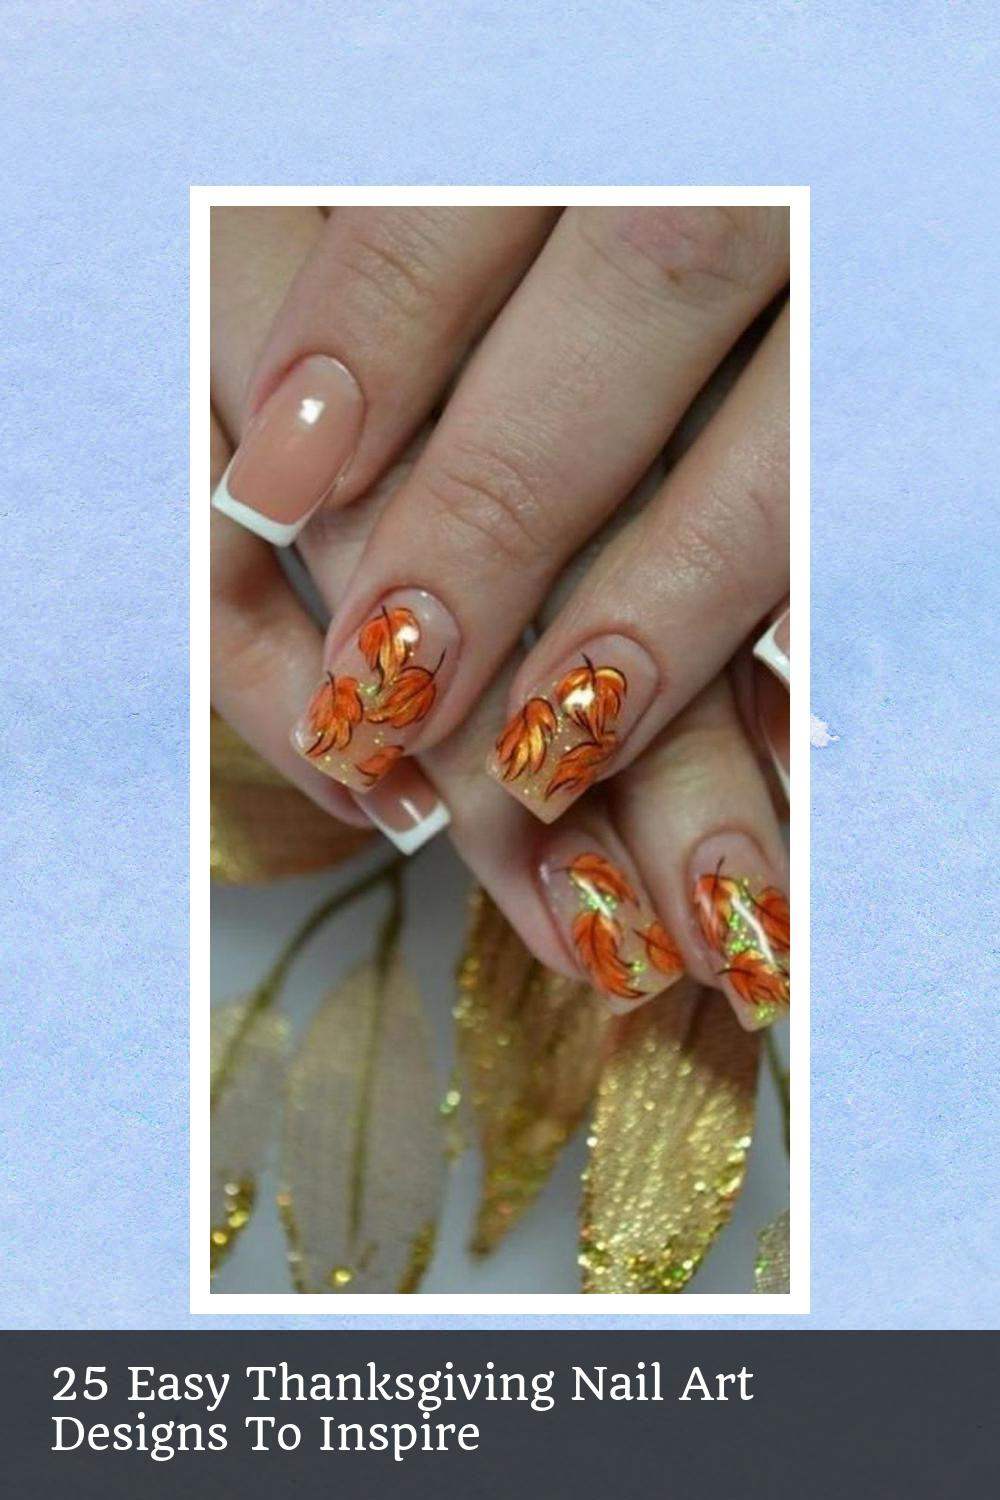 25 Easy Thanksgiving Nail Art Designs To Inspire 14